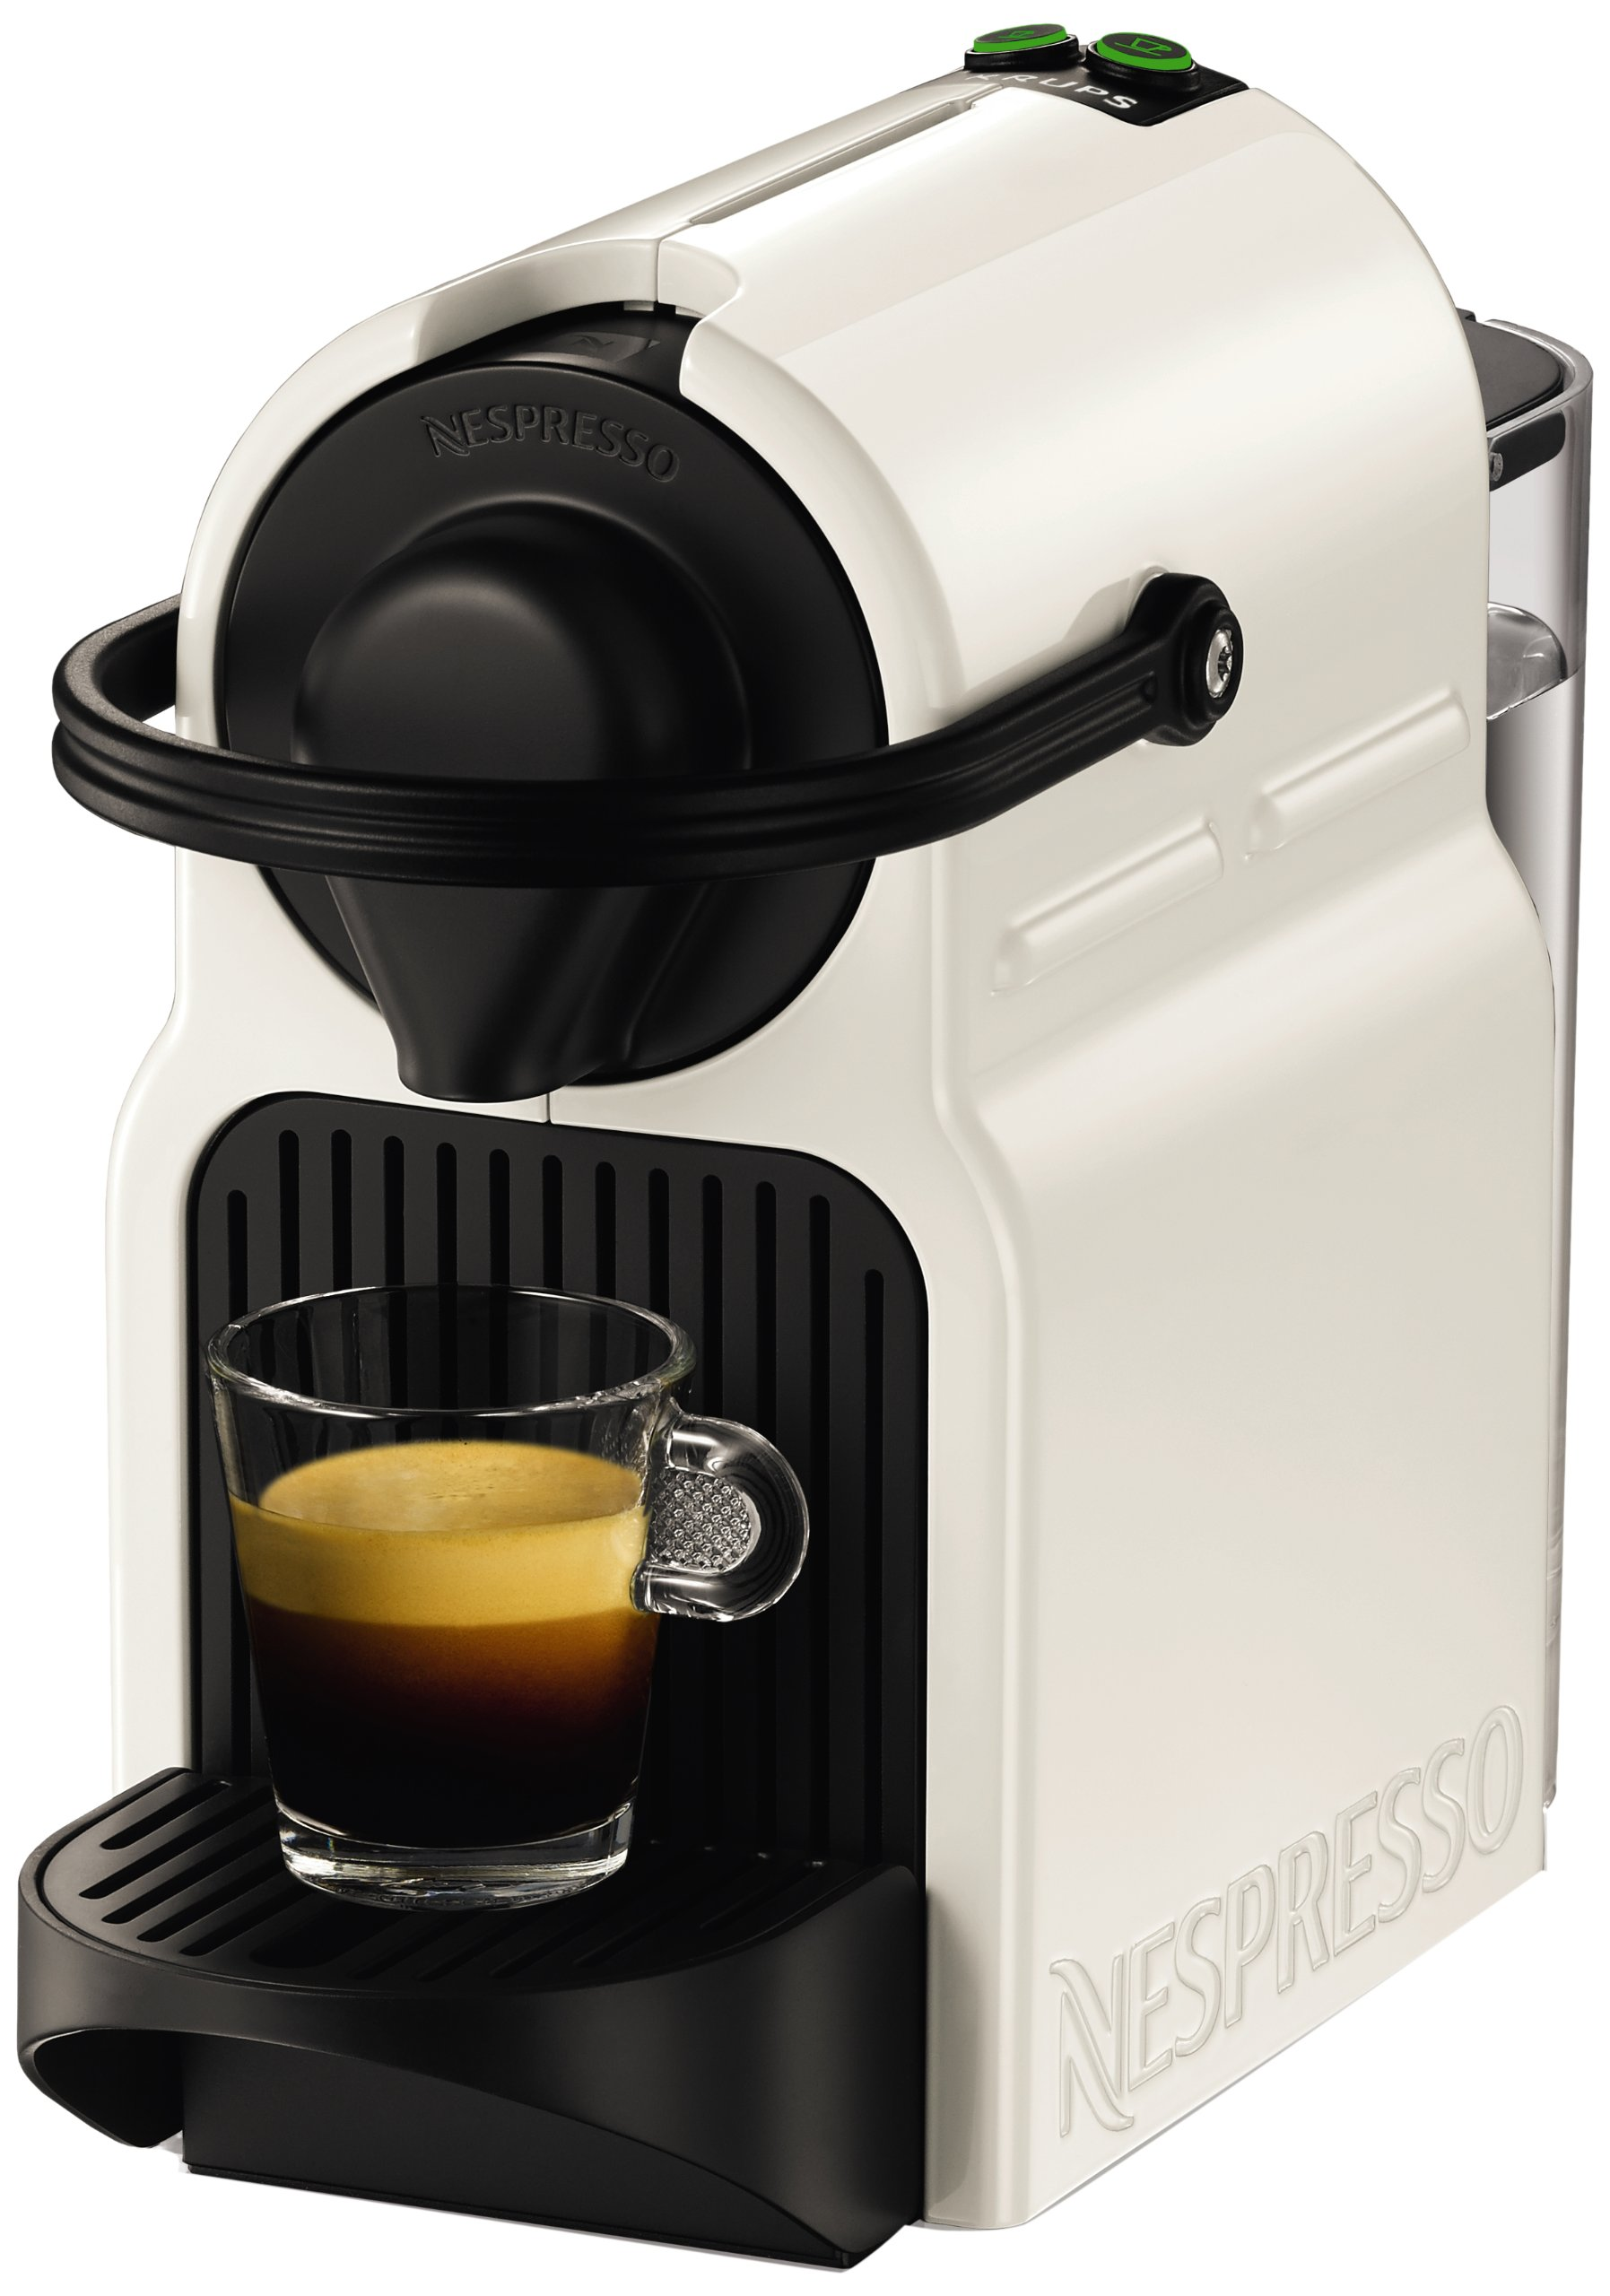 Krups Coffee Maker Capsules : Nespresso inissia by KRUPS Coffee Capsule Machine - White eBay